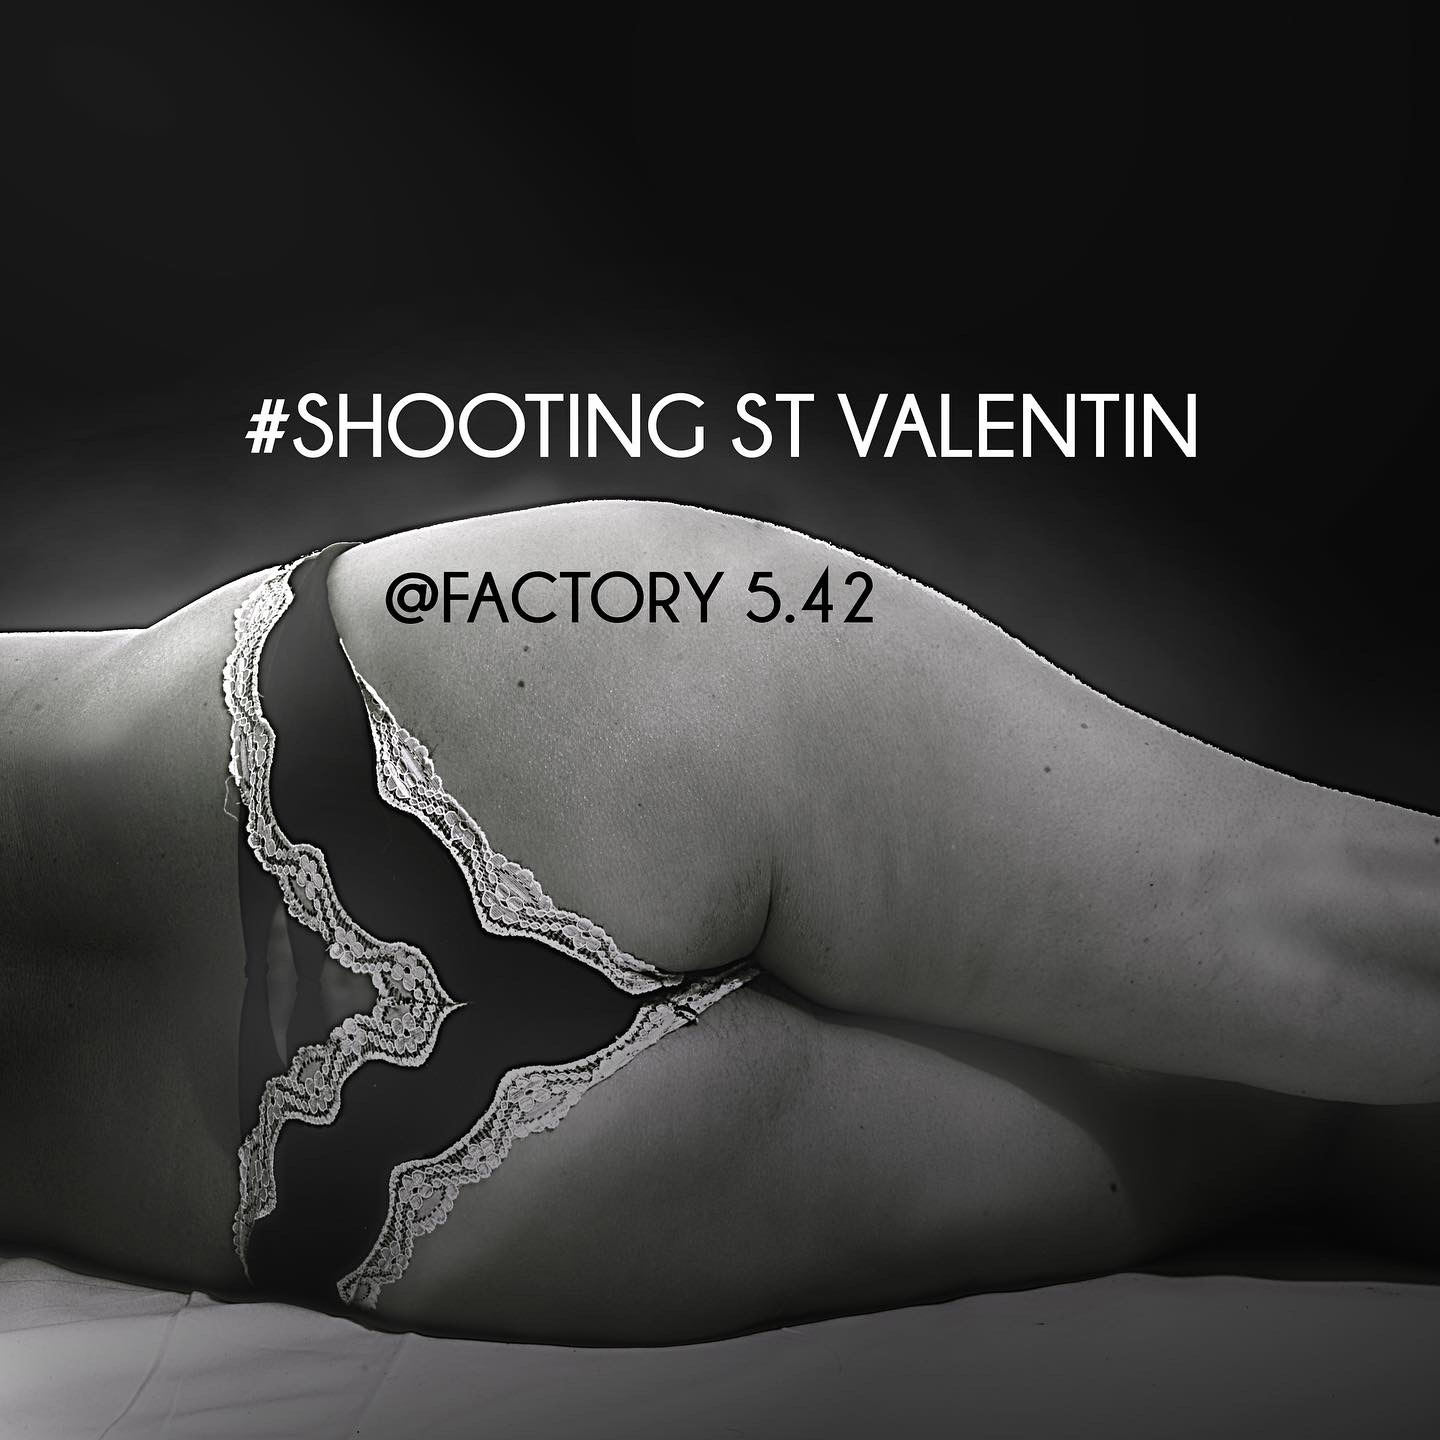 shooting st valentin@ factory 5.42